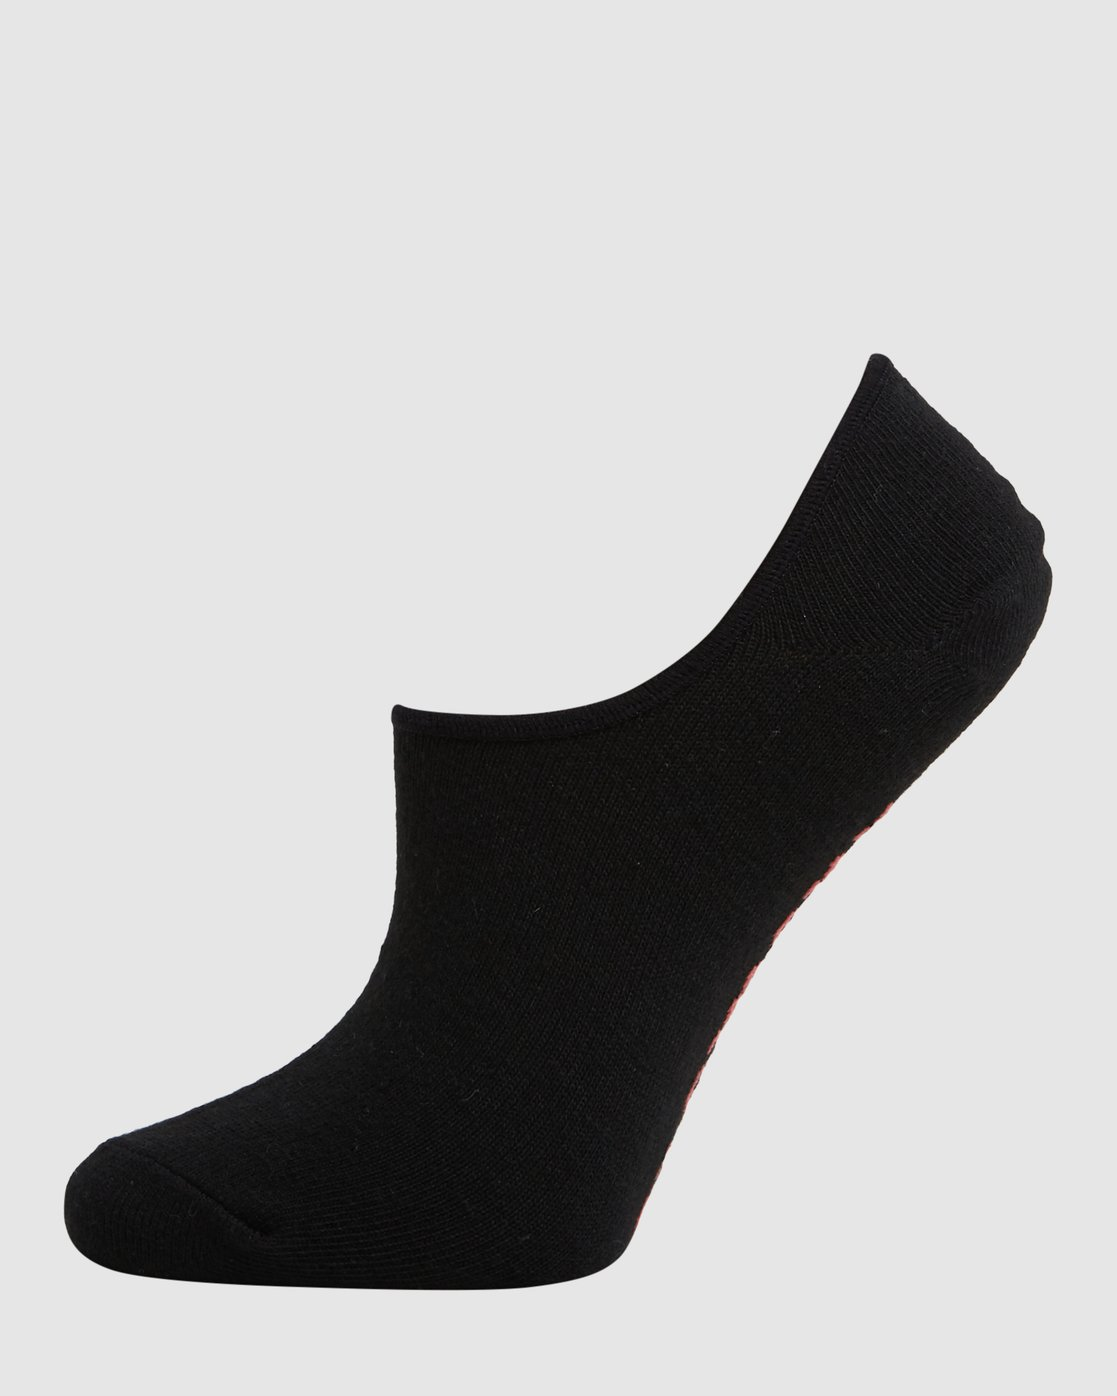 7 ELEMENT NUDIE SOCK 5 PACK Black 284653 Element